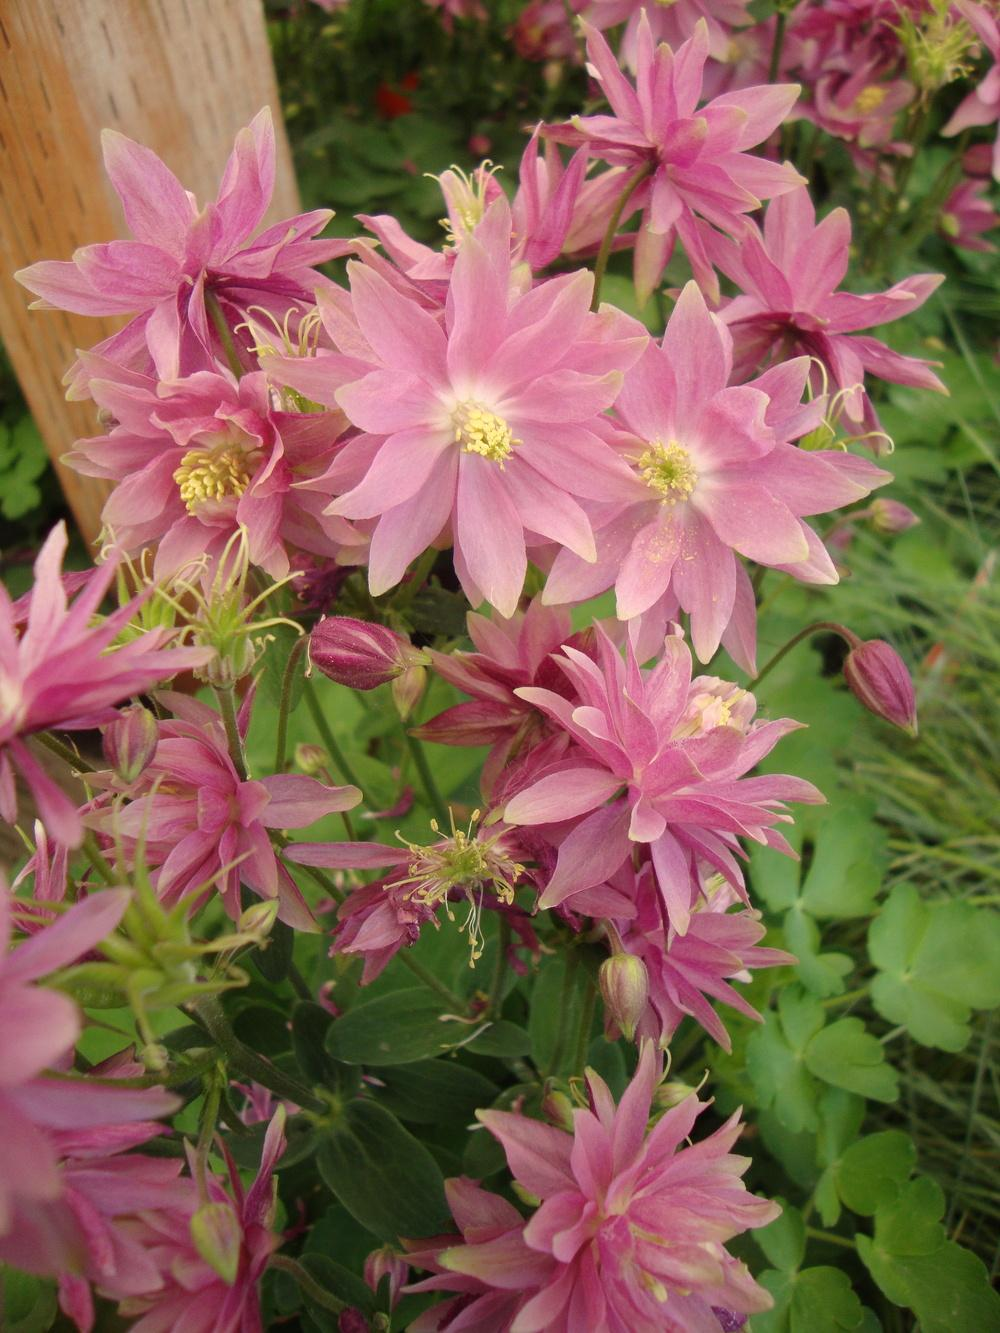 Photo of Columbine (Aquilegia vulgaris 'Clementine Salmon Rose') uploaded by Paul2032